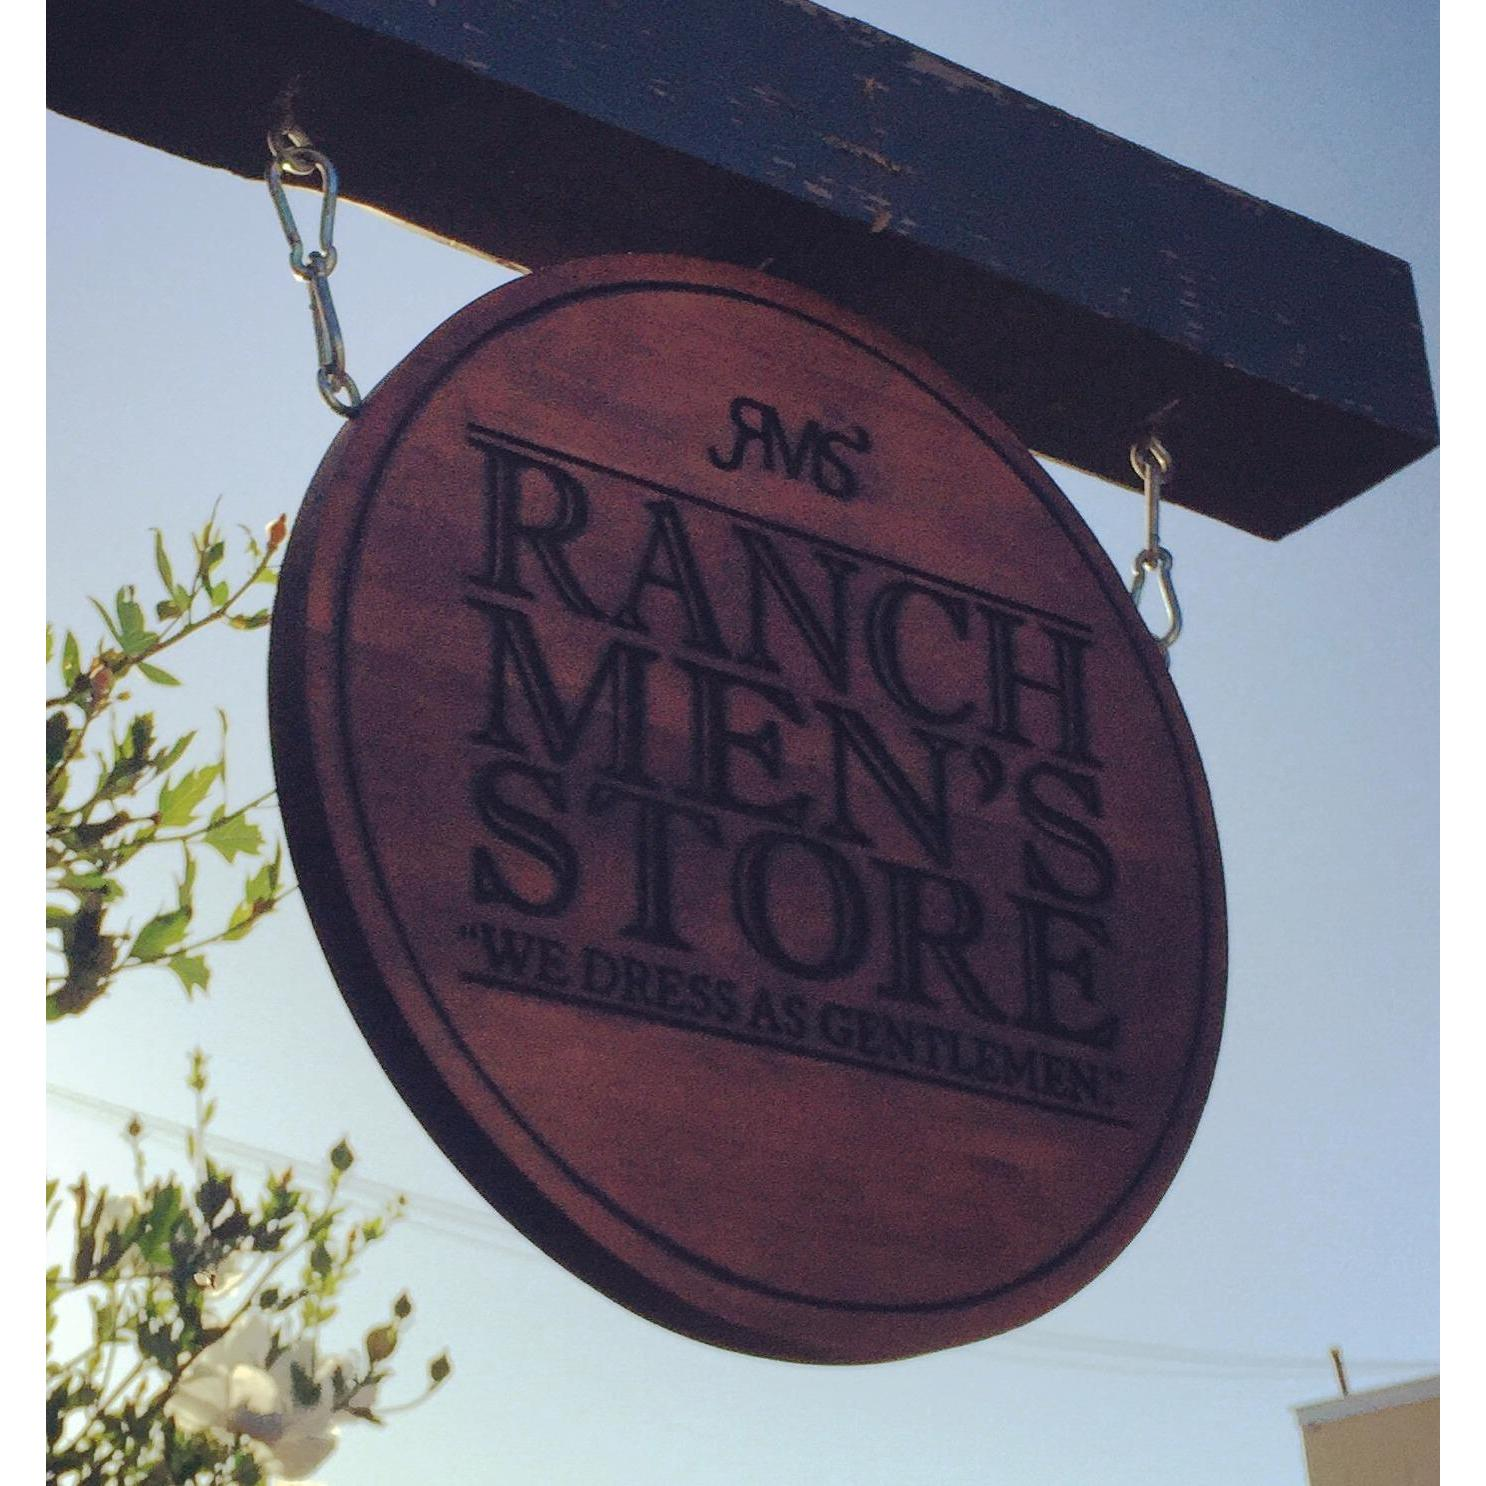 Ranch Men's Store